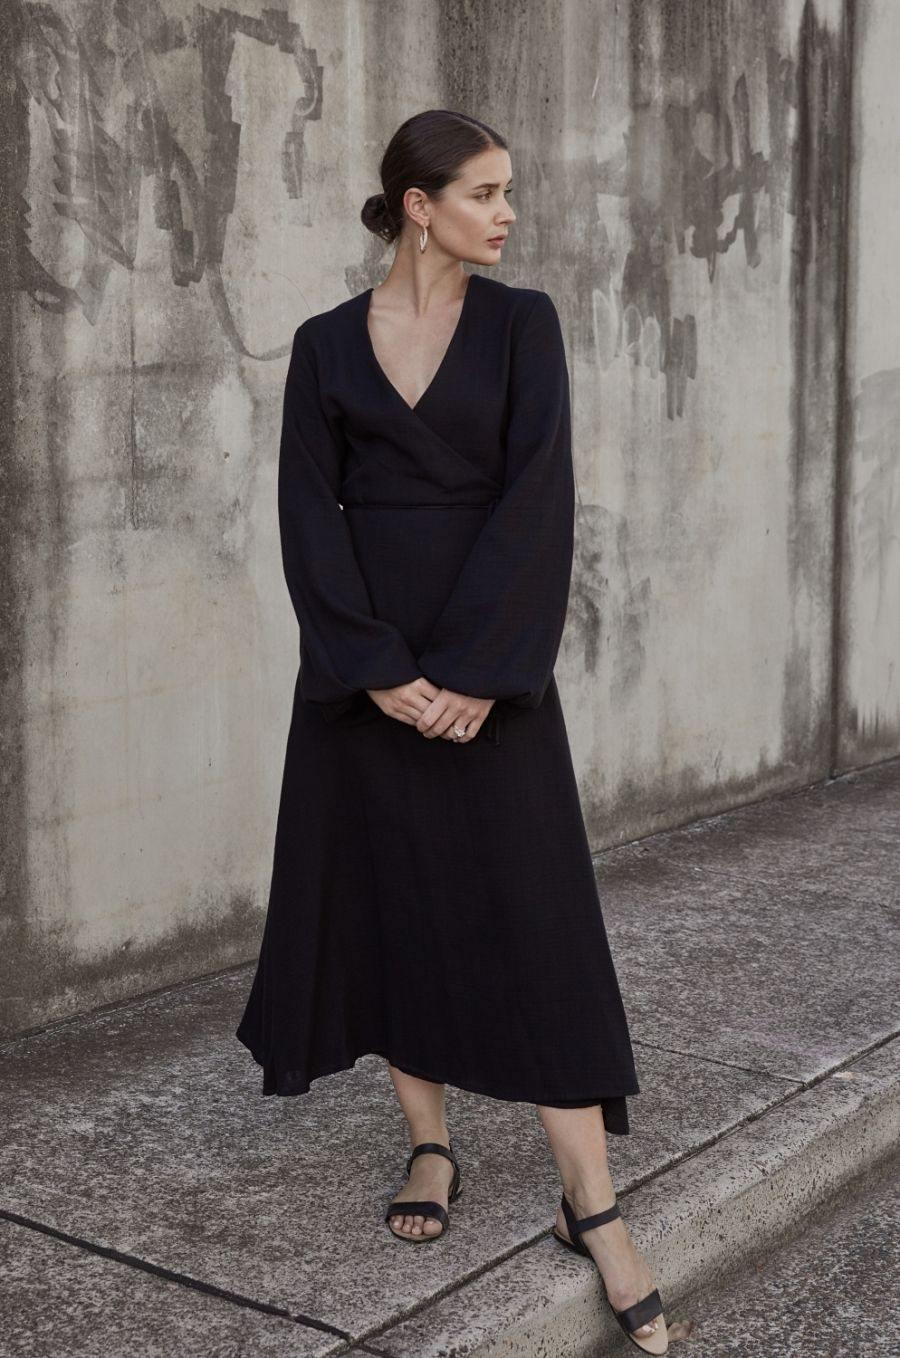 Black wrap dress matin studio the undone street style outfit